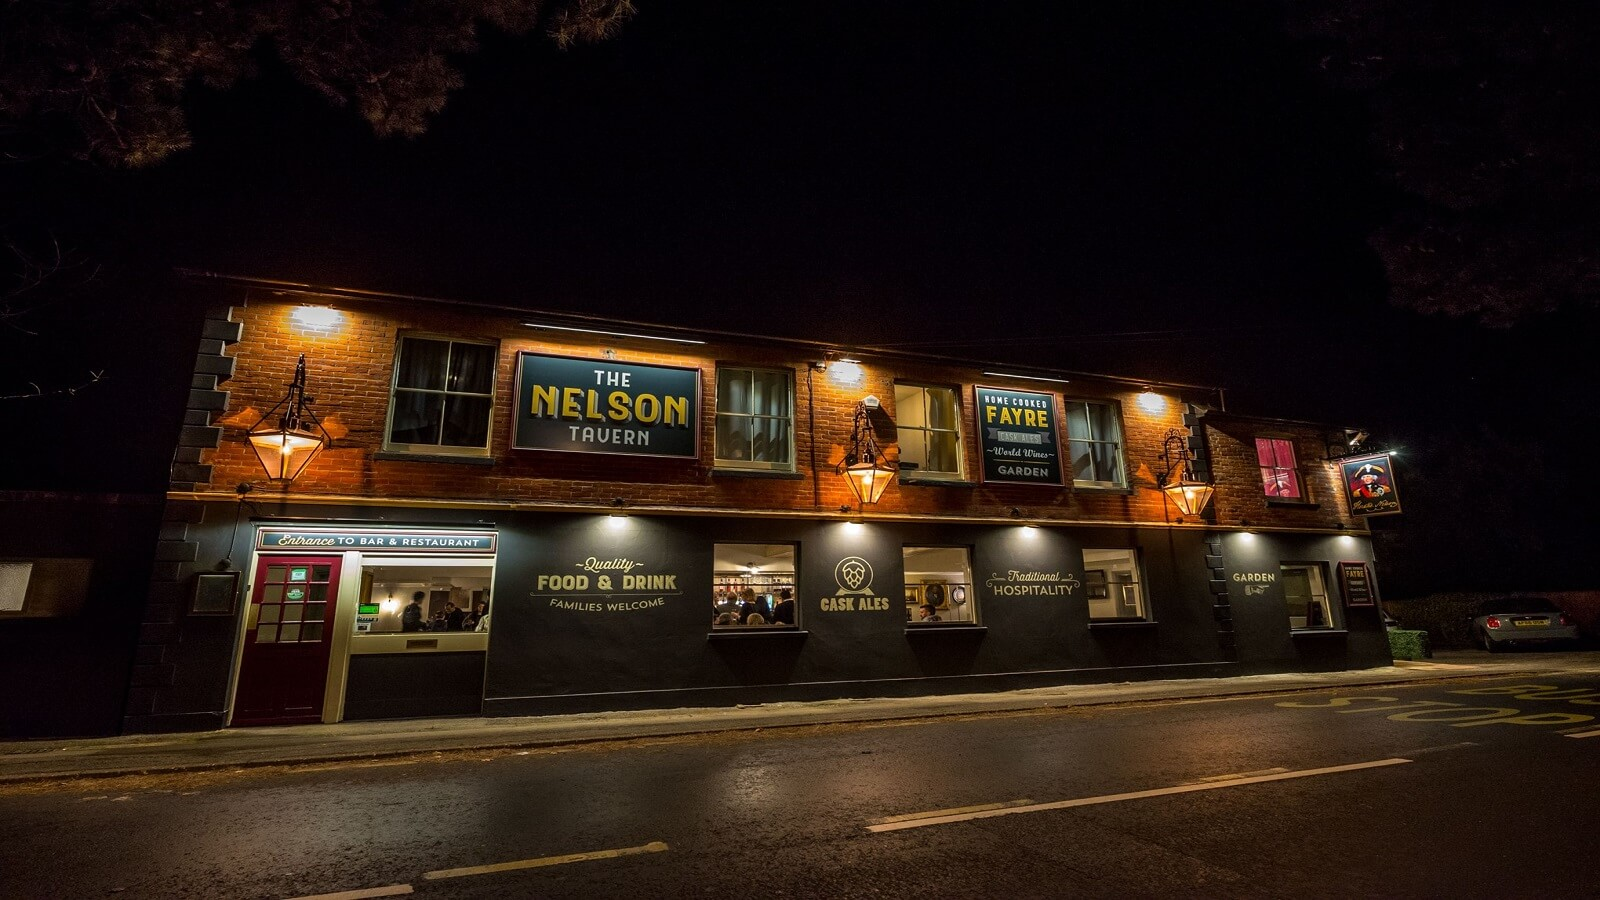 The Nelson Tavern